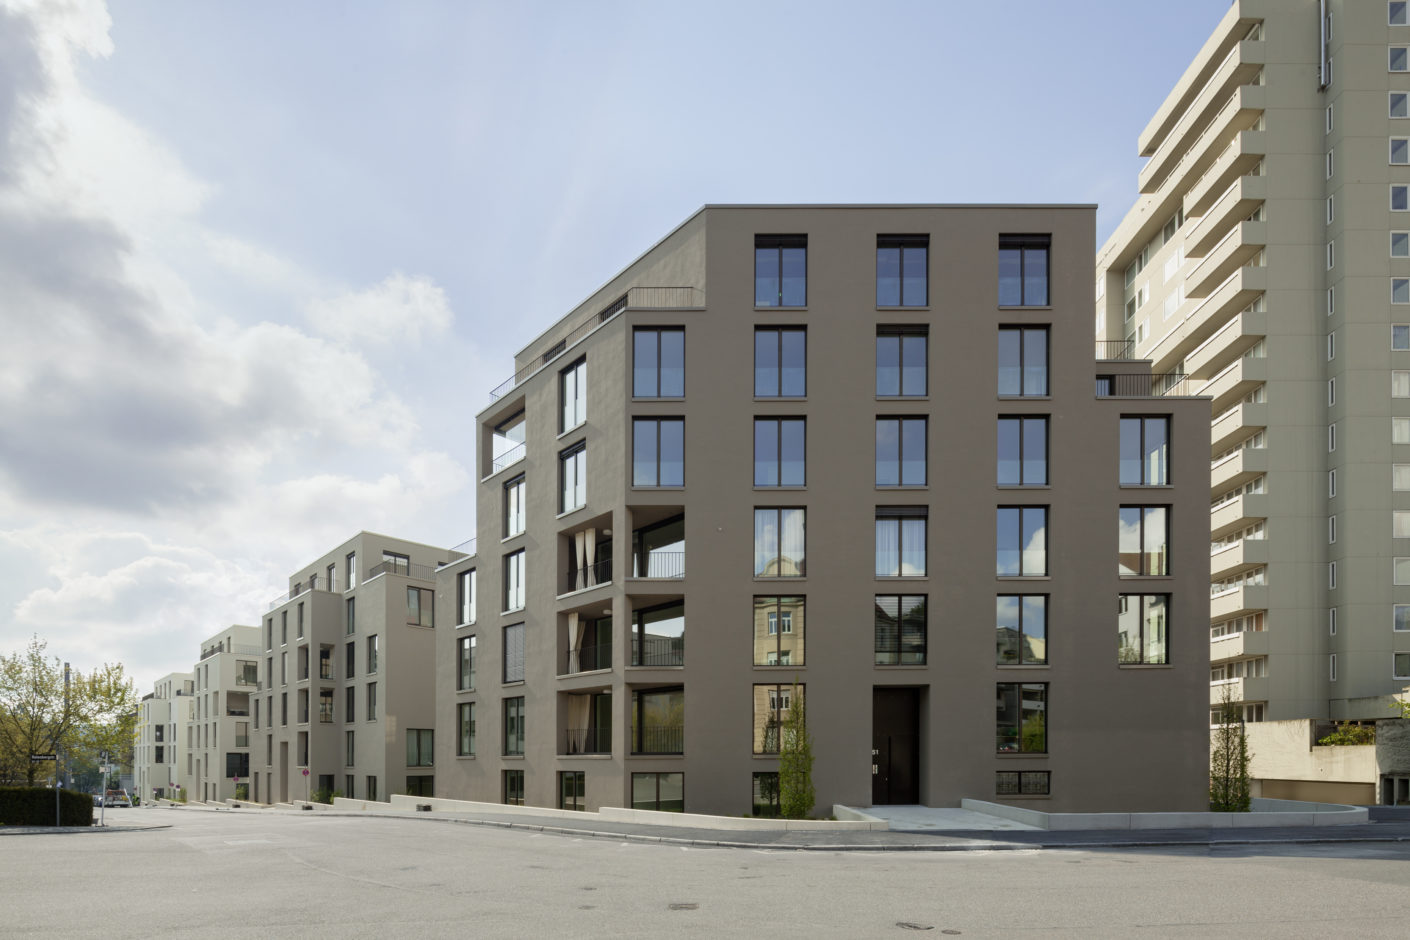 Kuehn Malvezzi, housing project, Stylepark